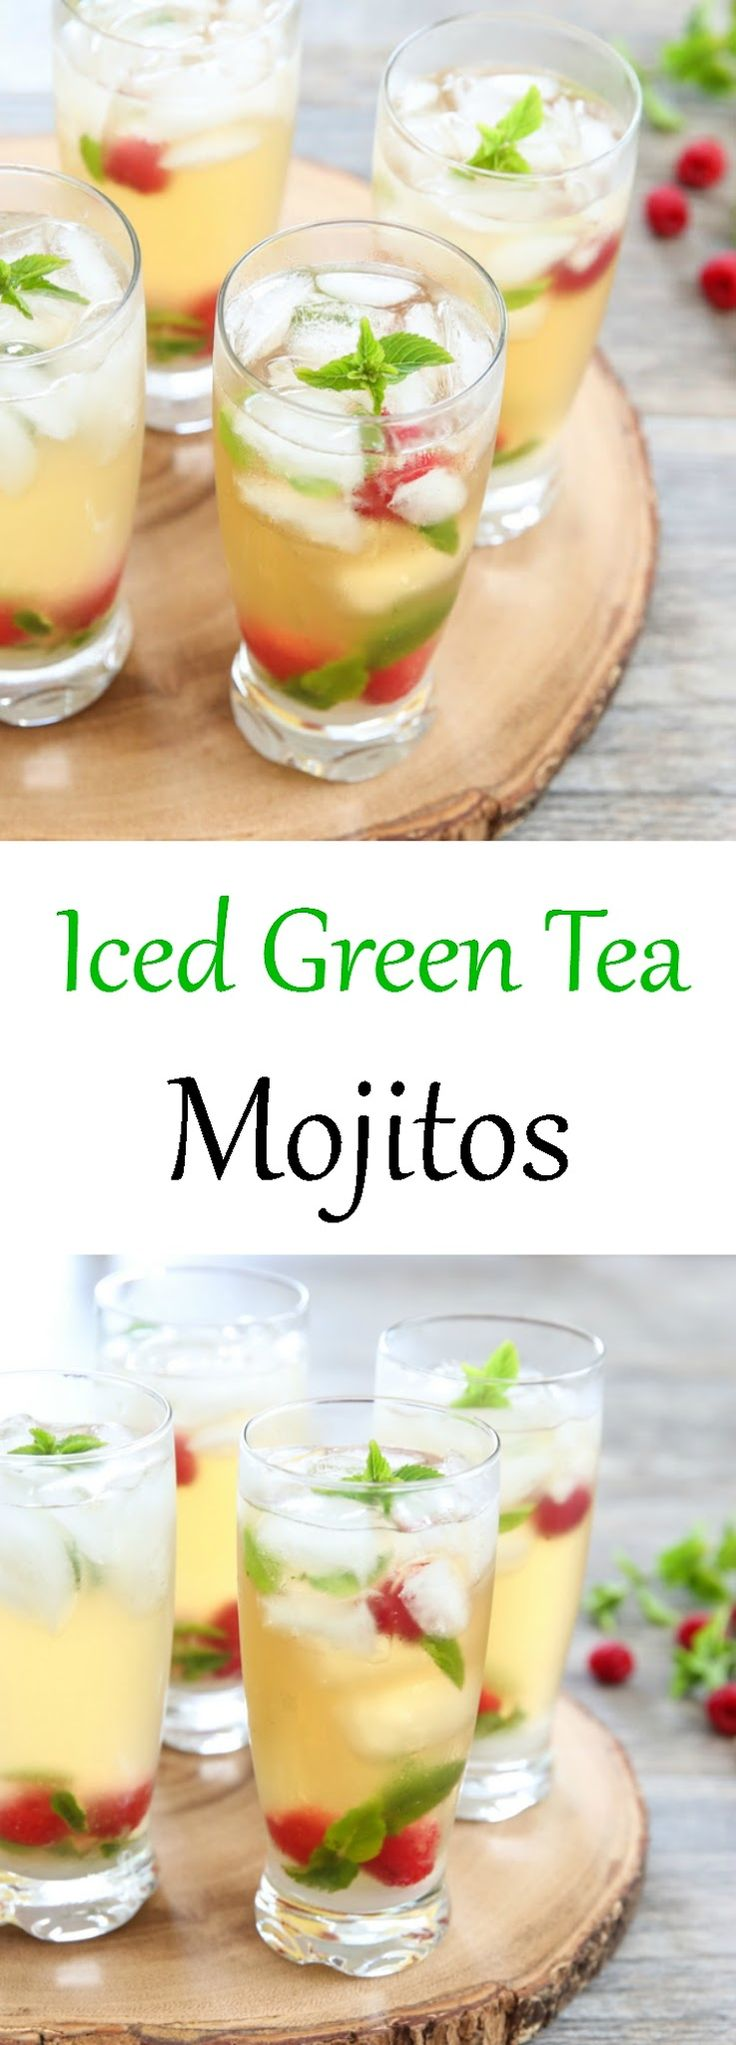 Iced Green Tea Mojitos. A twist on the classic that is both thirst-quenching and delicious. A great summer cocktail.